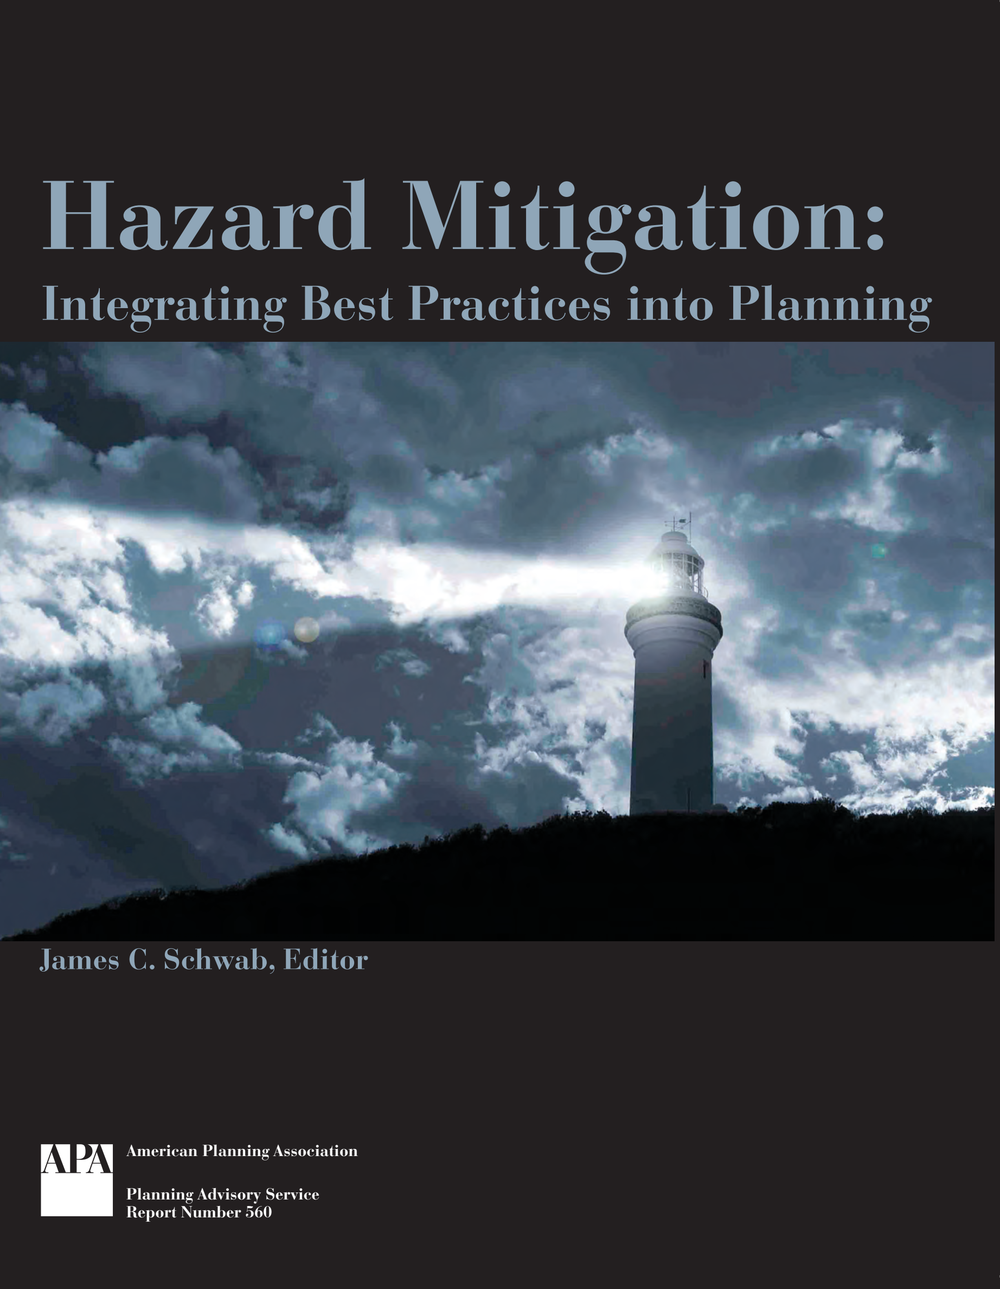 Hazard Mitigation: Best Practices